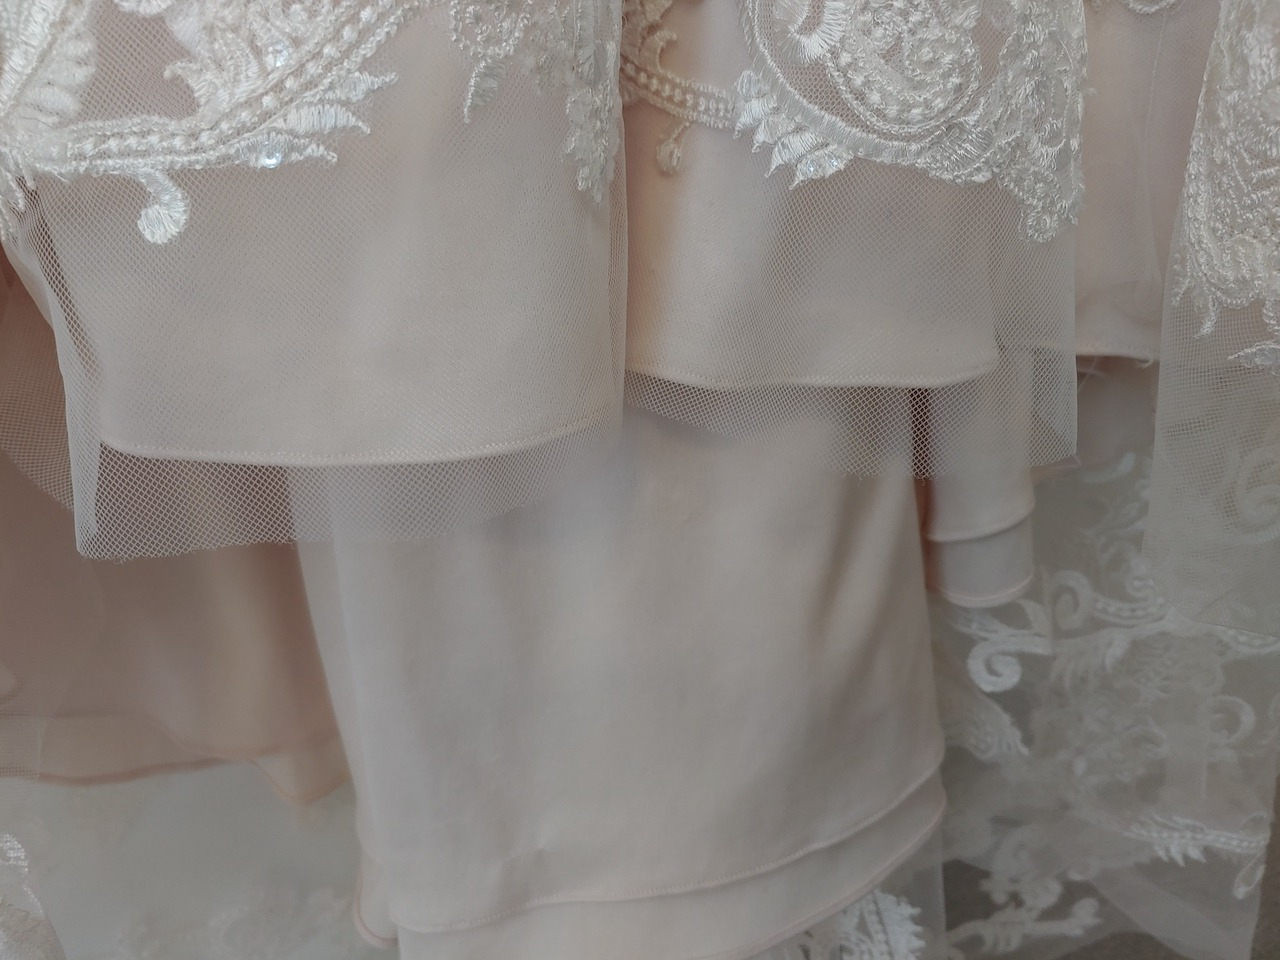 lace with flower patterns